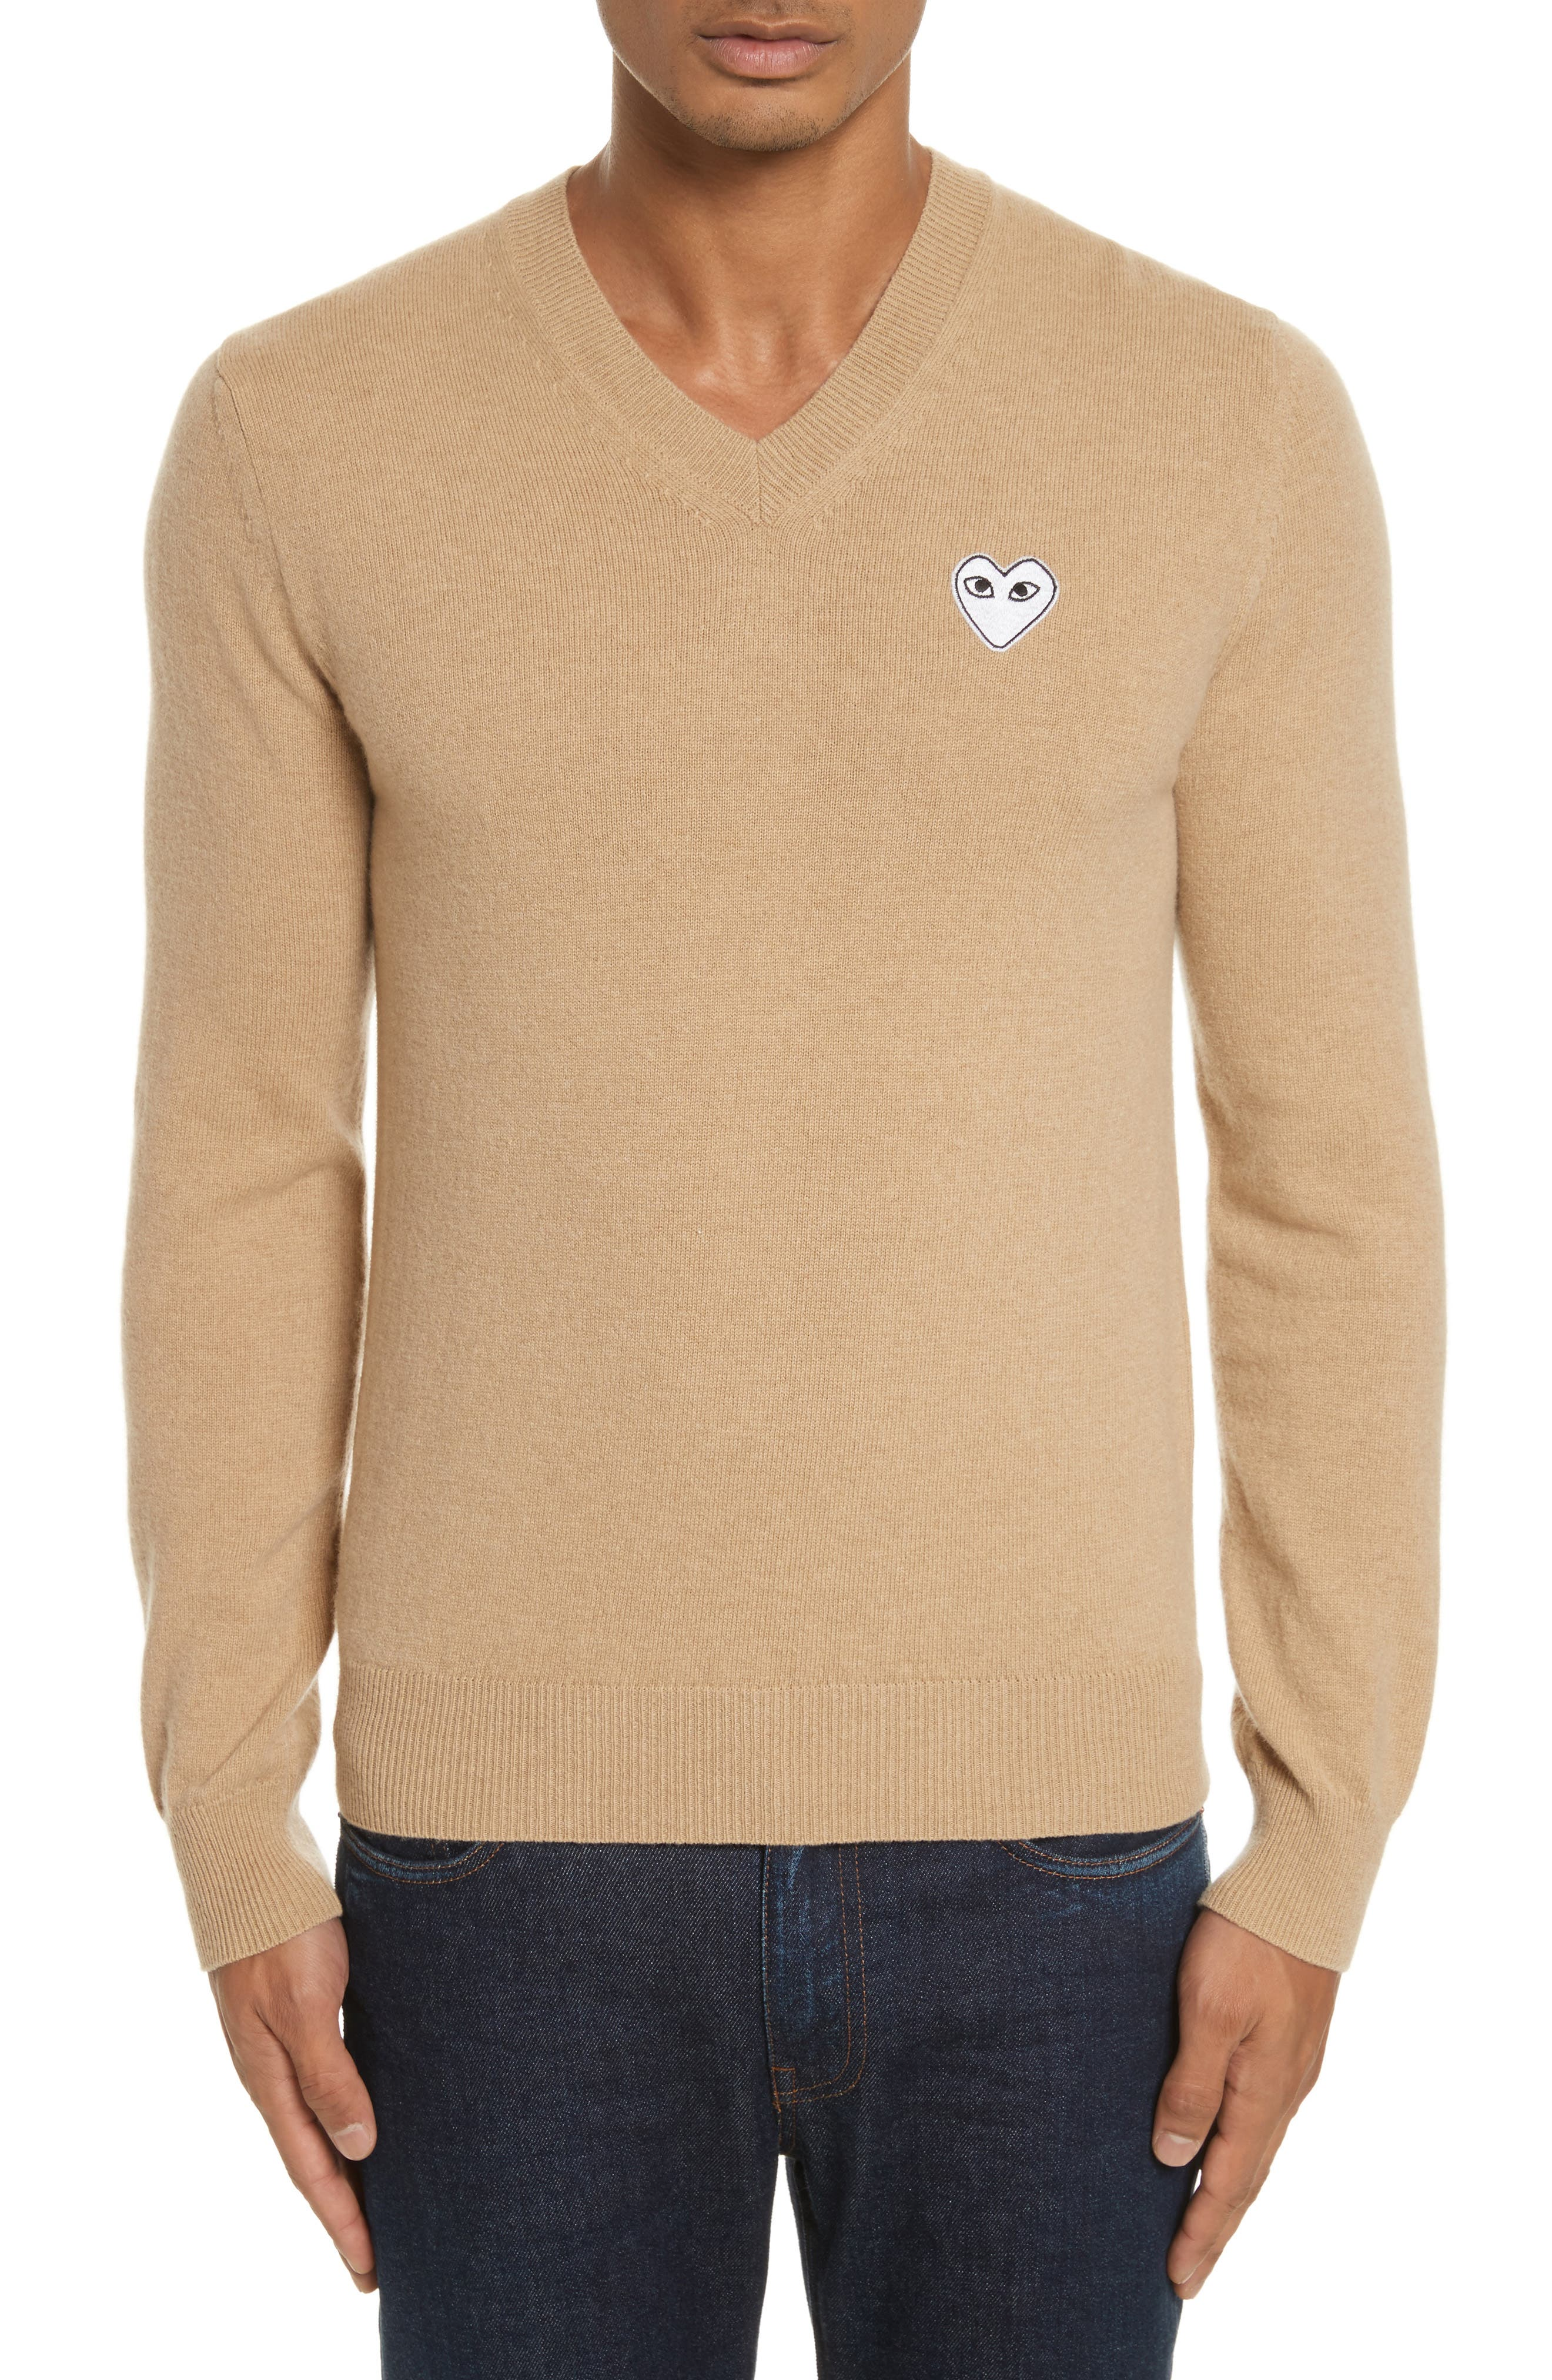 Comme des Garçons PLAY White Heart Wool V-Neck Sweater,                             Main thumbnail 1, color,                             Camel